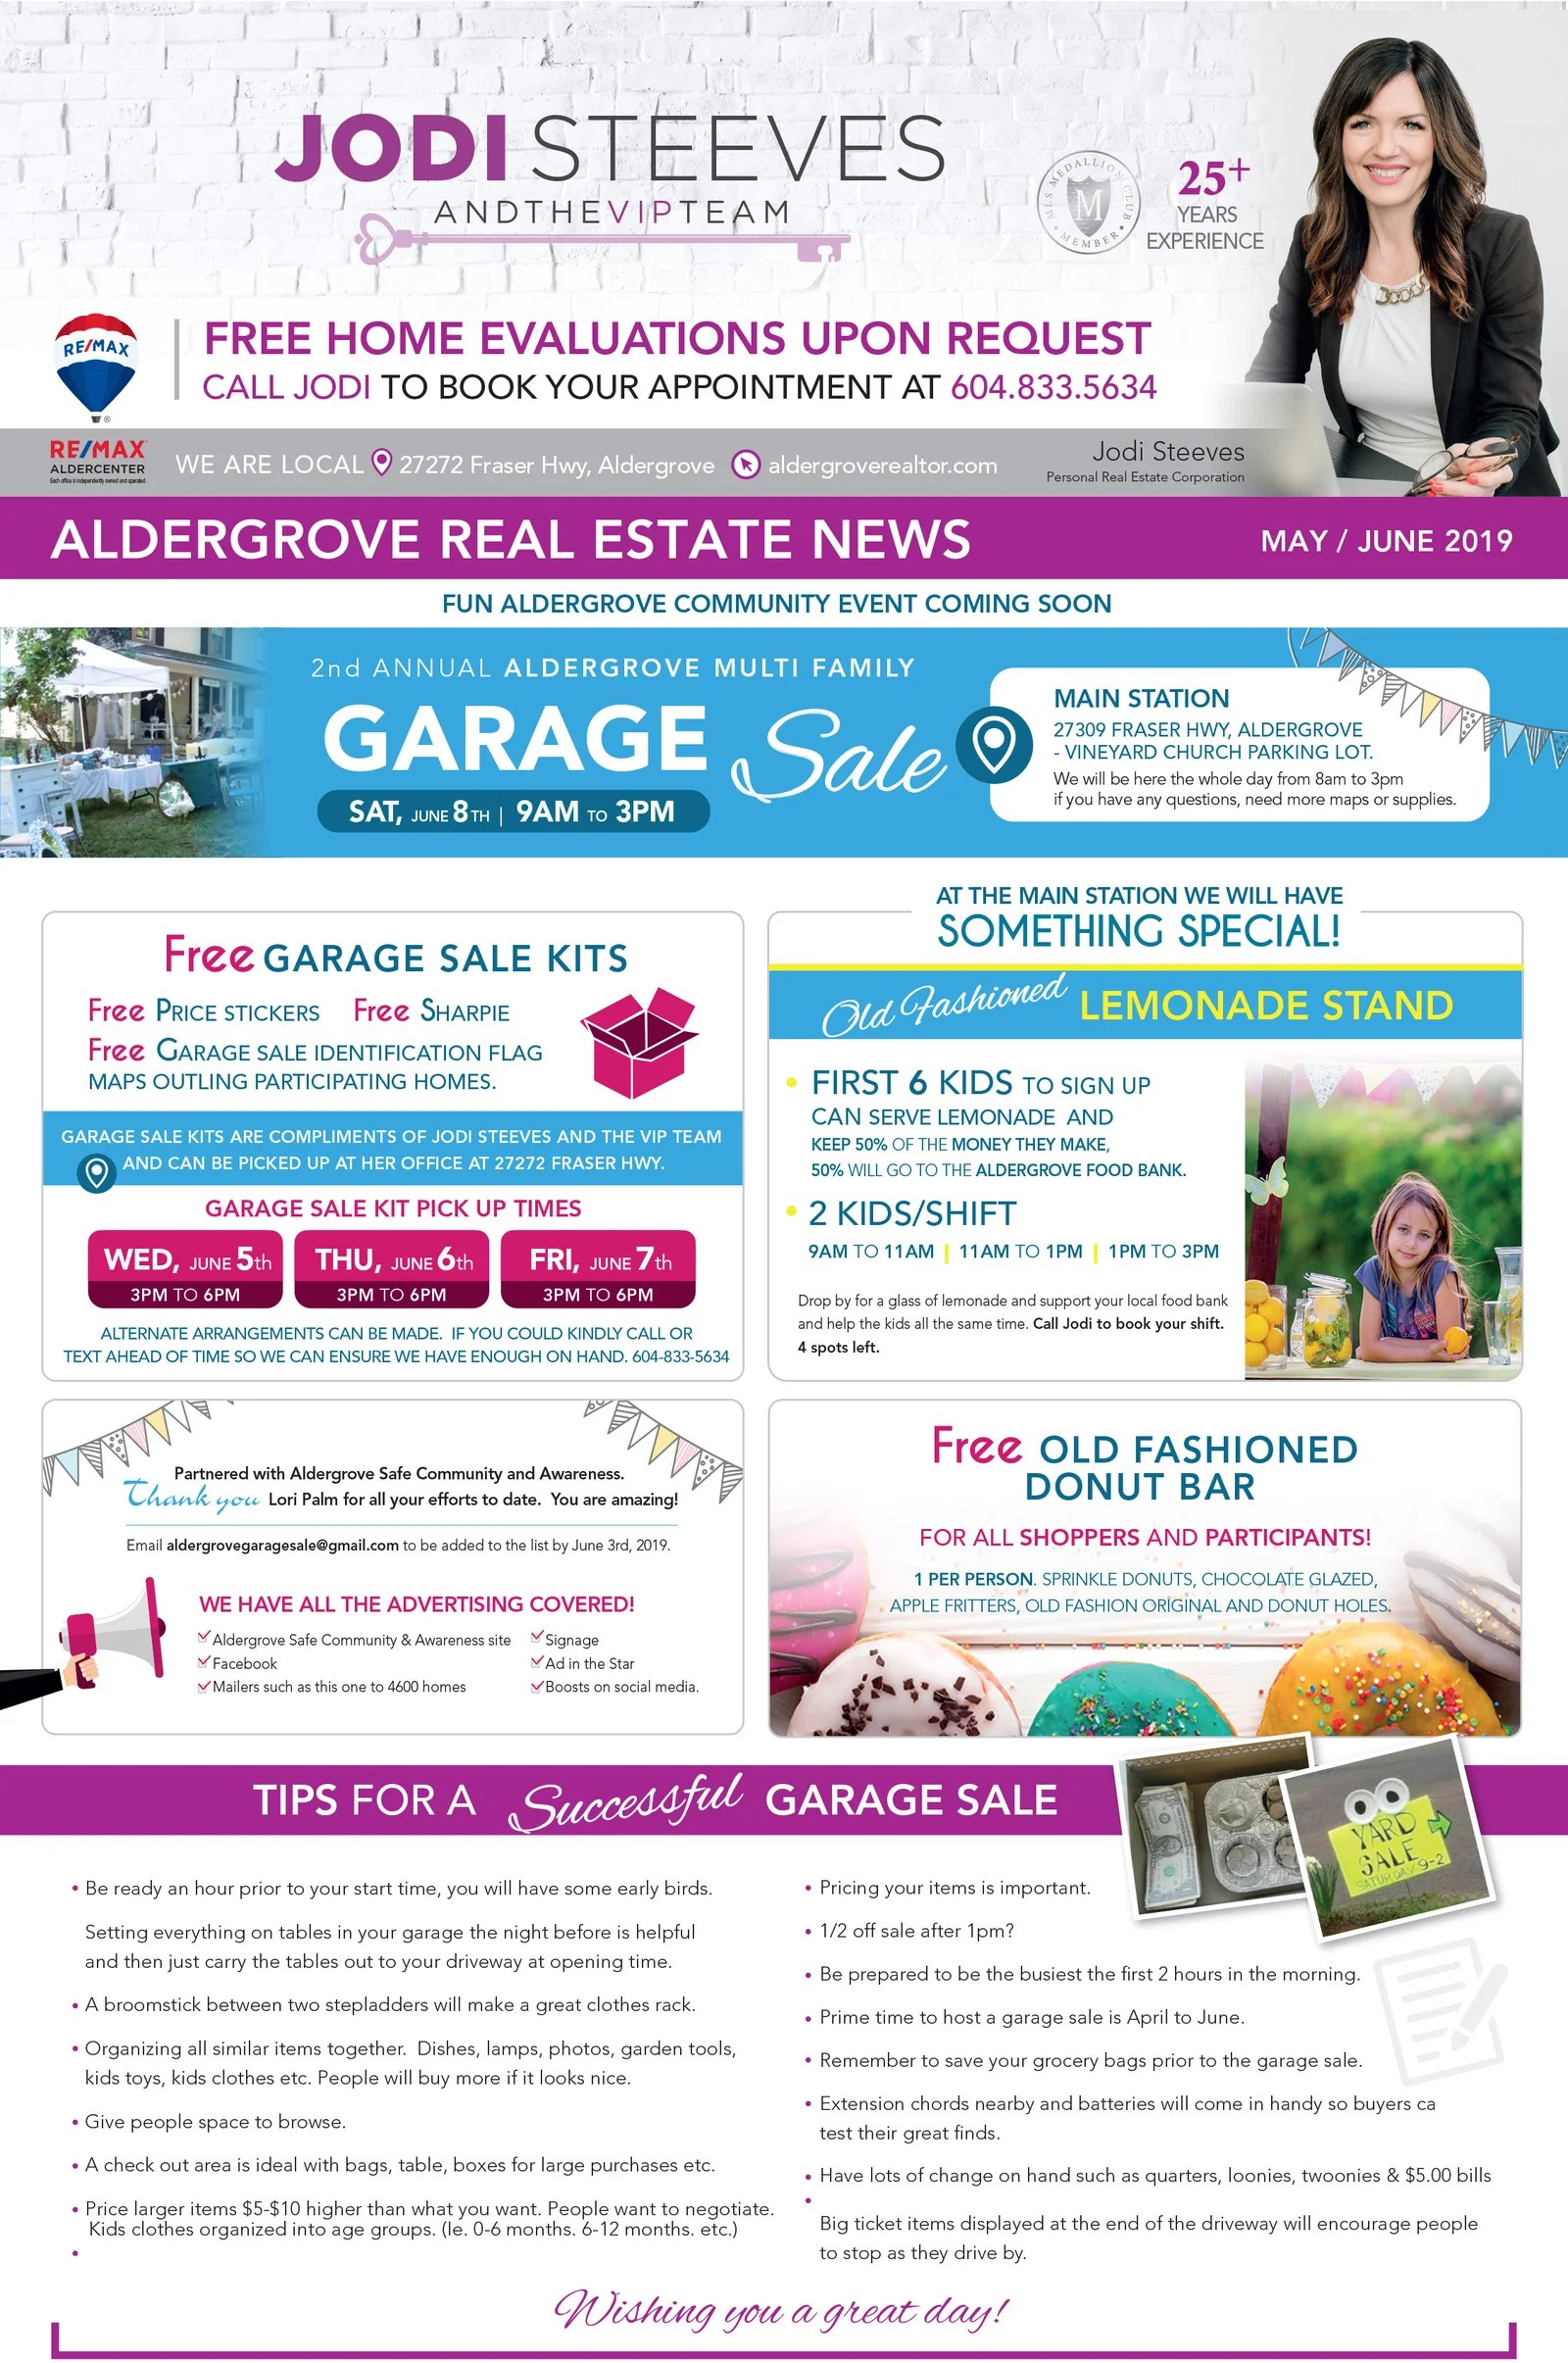 Garage Sale Website Garage Sale Tips And Info Jodi Steeves Jodi And The Vip Team